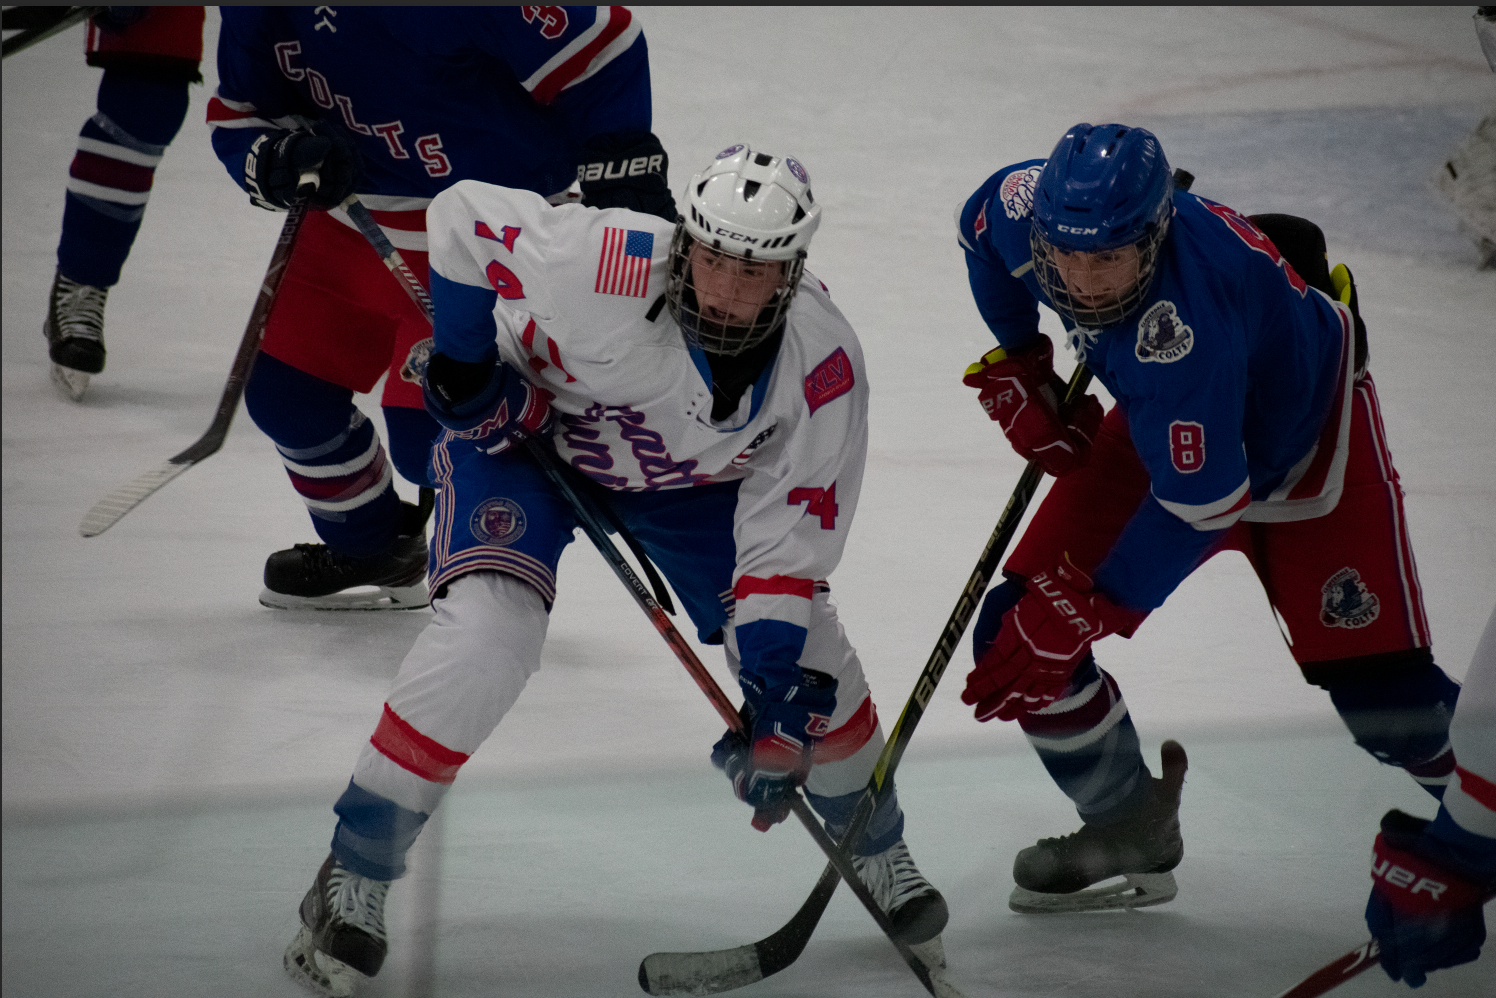 Sophomore Jason Murphy follows the puck and posts face off at Olympicview Arena on Dec. 7, 2019 against Cloverdale. Photo by Tammi Tran